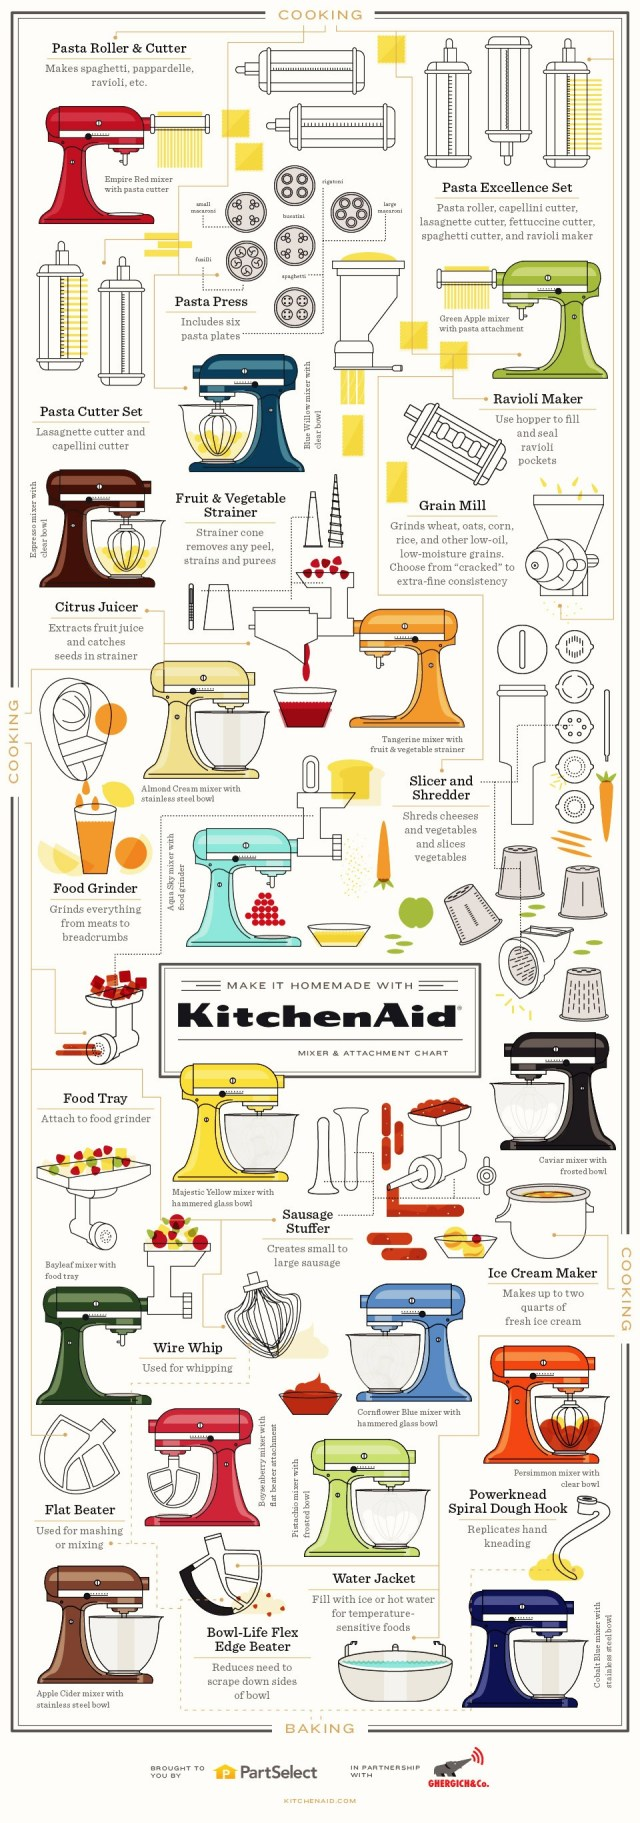 Awesome Products Every Kitchenaid Mixer Attachment And